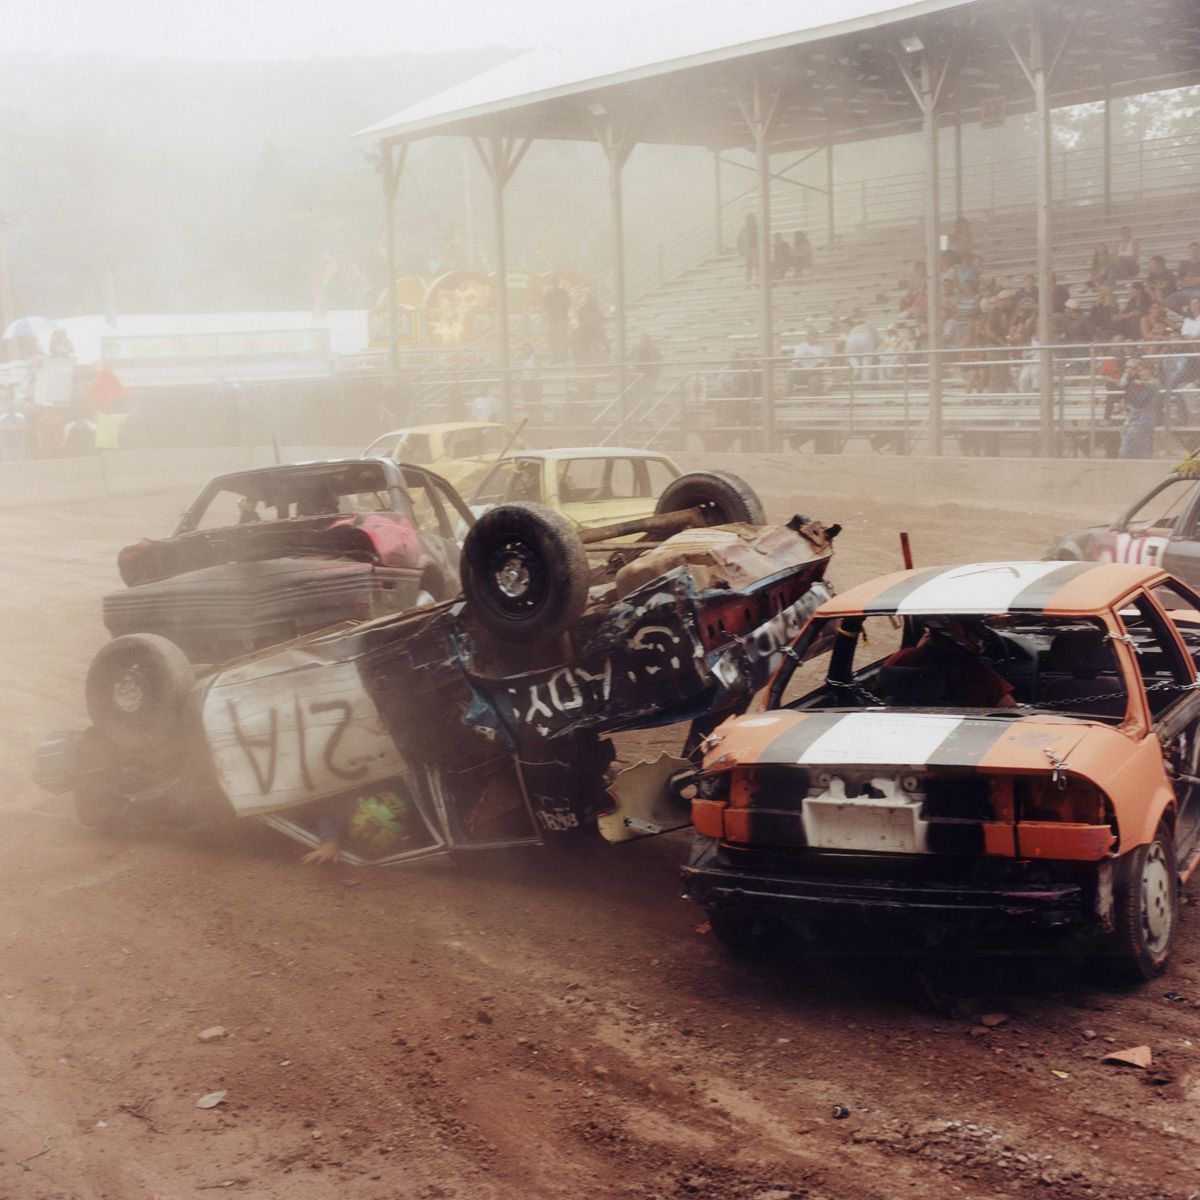 Demo Derby: Checkered Flag